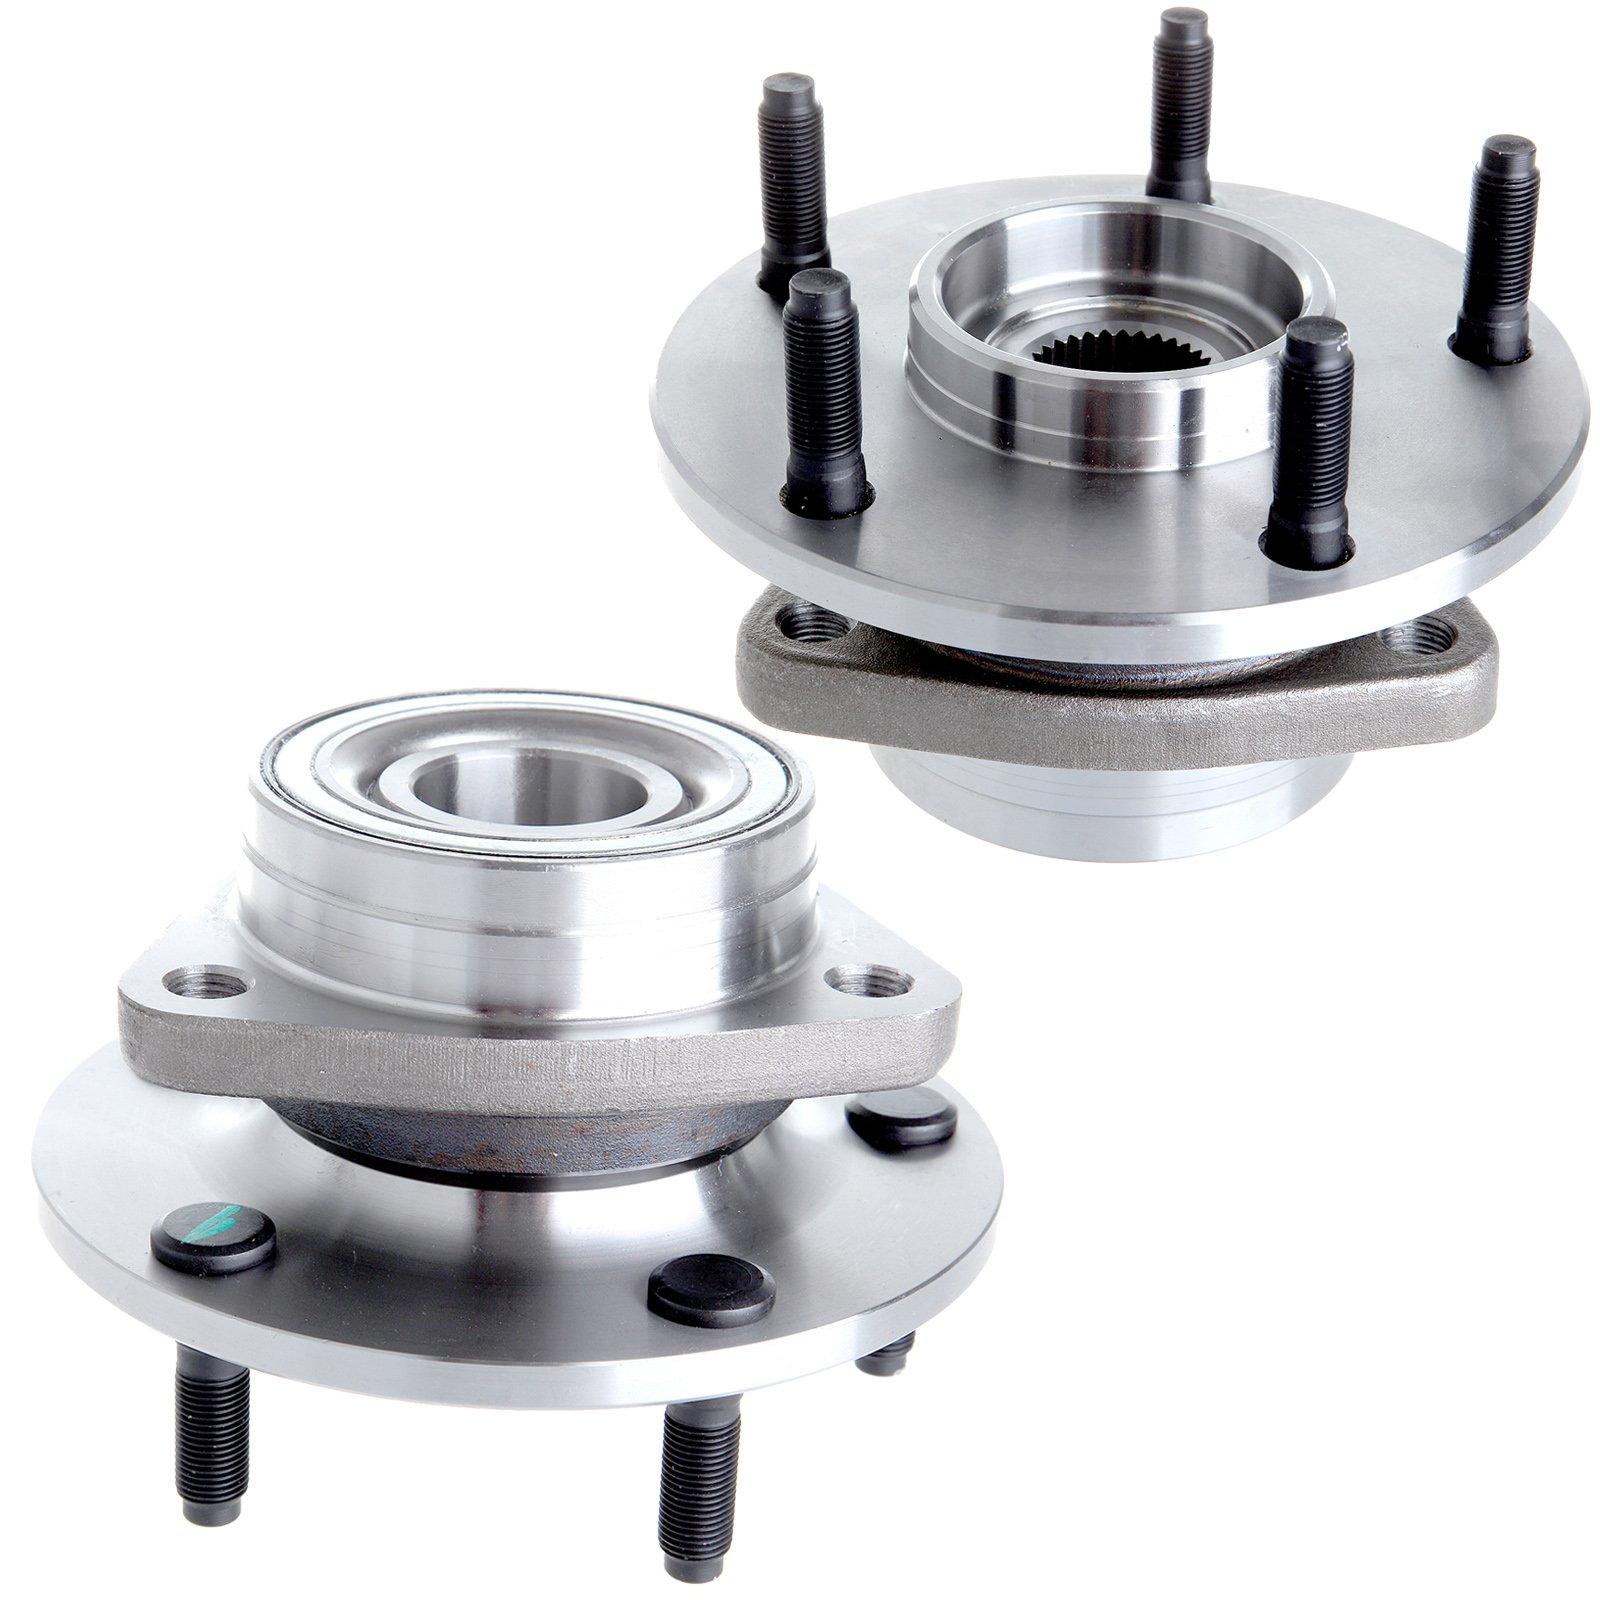 Wheel Hub Bearing fits 1994-1999 Dodge Ram 1500 4WD 5 Lugs Compatible with 515006 2pcs by ECCPP